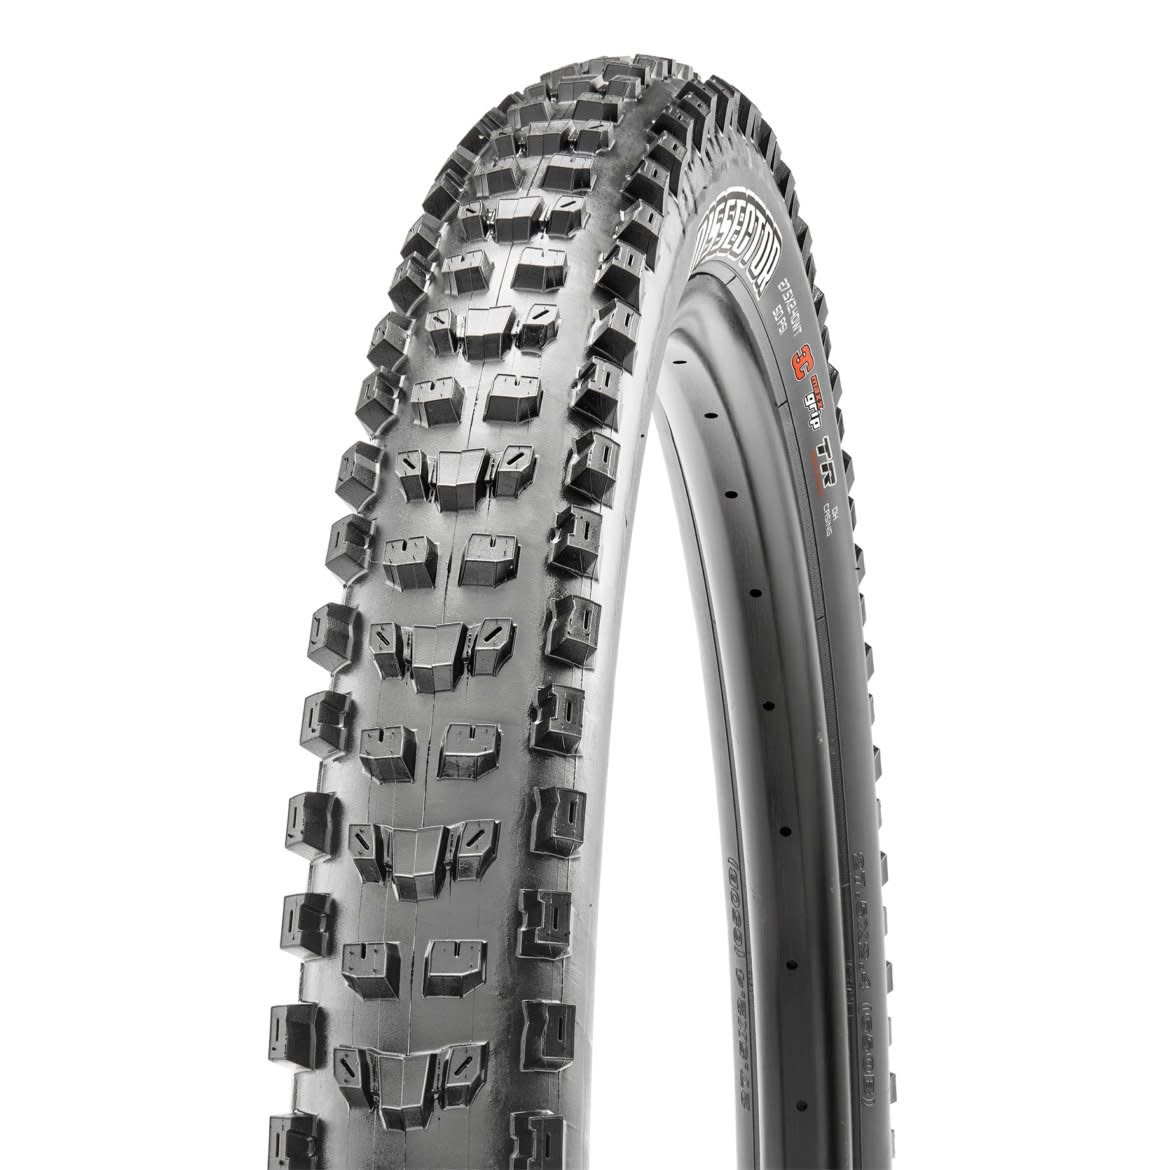 Maxxis Maxxis, Dissector, Tire, 29''x2.60, Folding, Tubeless Ready, 3C Maxx Terra, EXO+, Wide Trail, 60TPI, Black